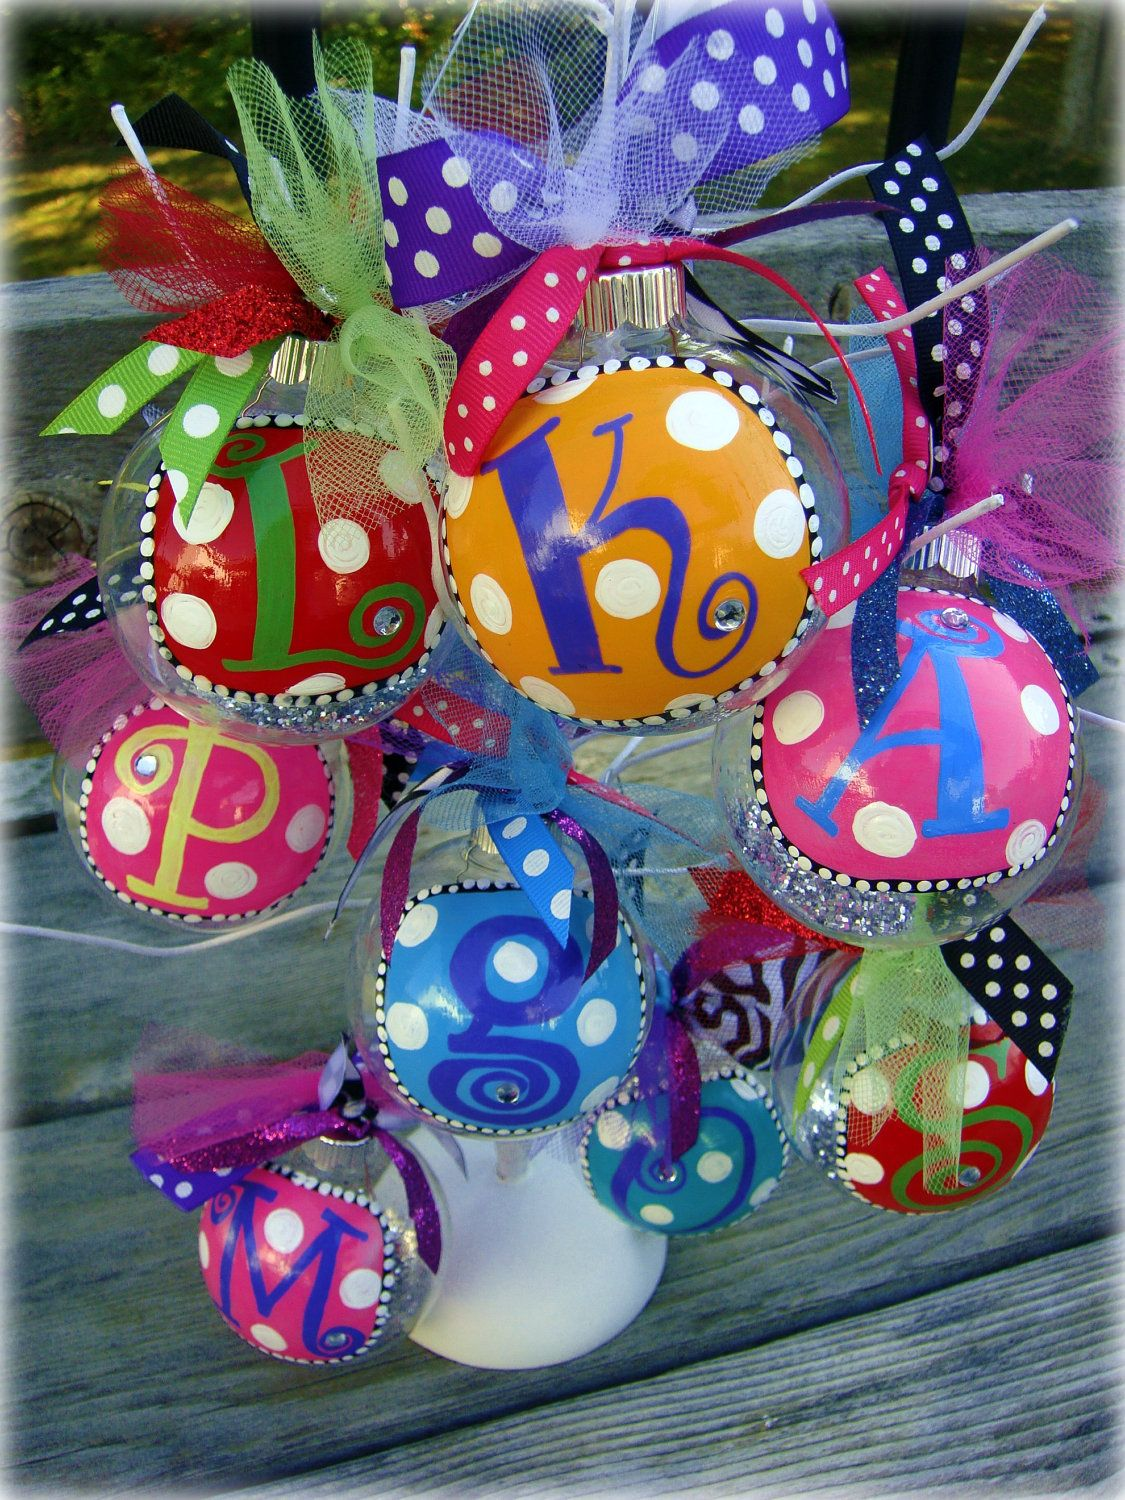 Sharpie Paint Pens Ornaments Ribbon And You Have Yourself A Very Cute Diy Ornament For Xmas